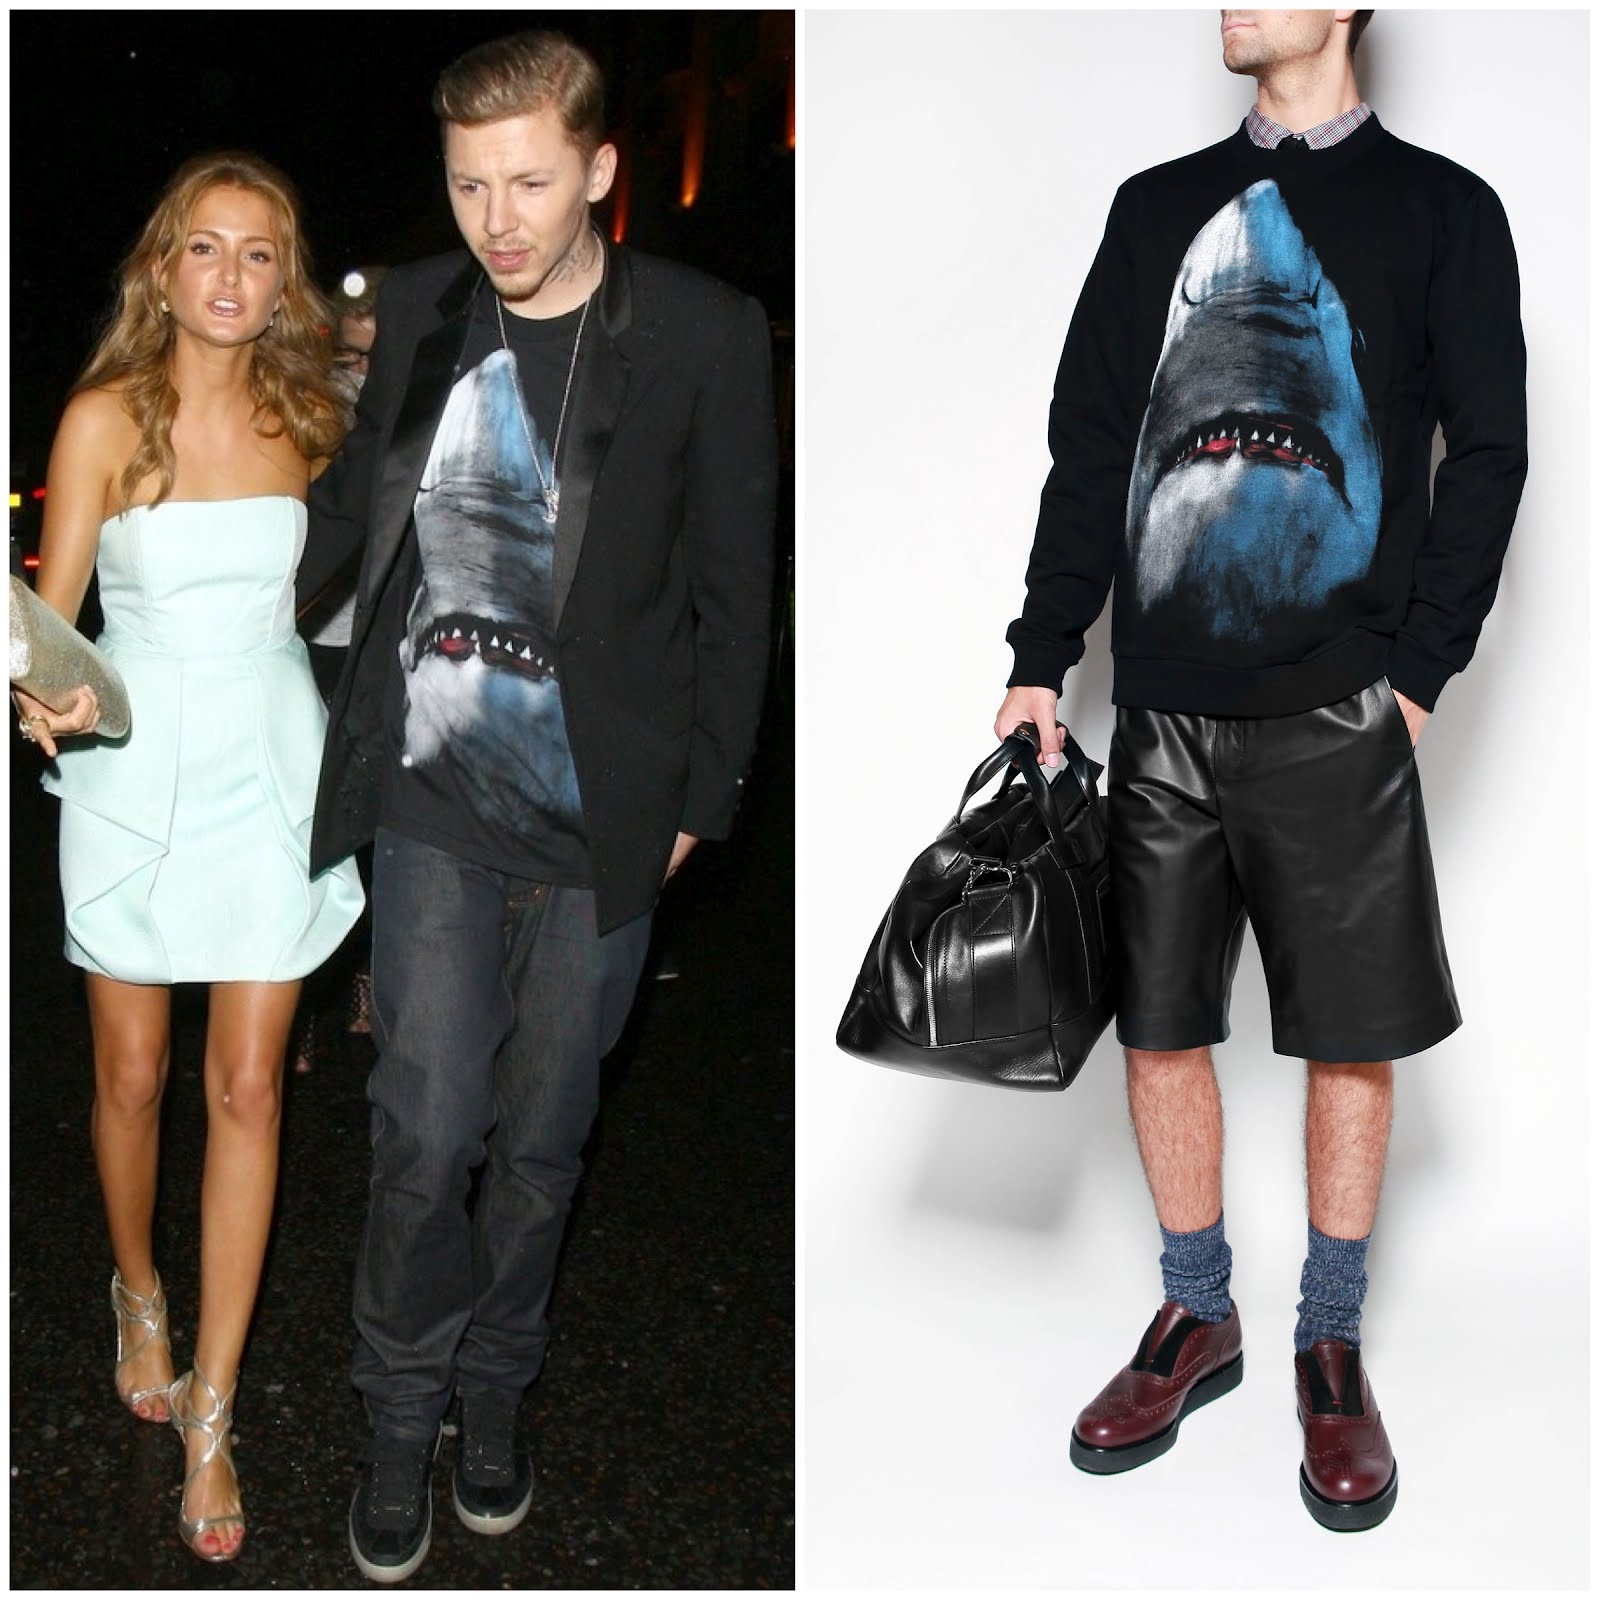 00o00 menswear london blog fashion style Givenchy shark shirt sweat Professor Green Tinie Tempah Mr Porter